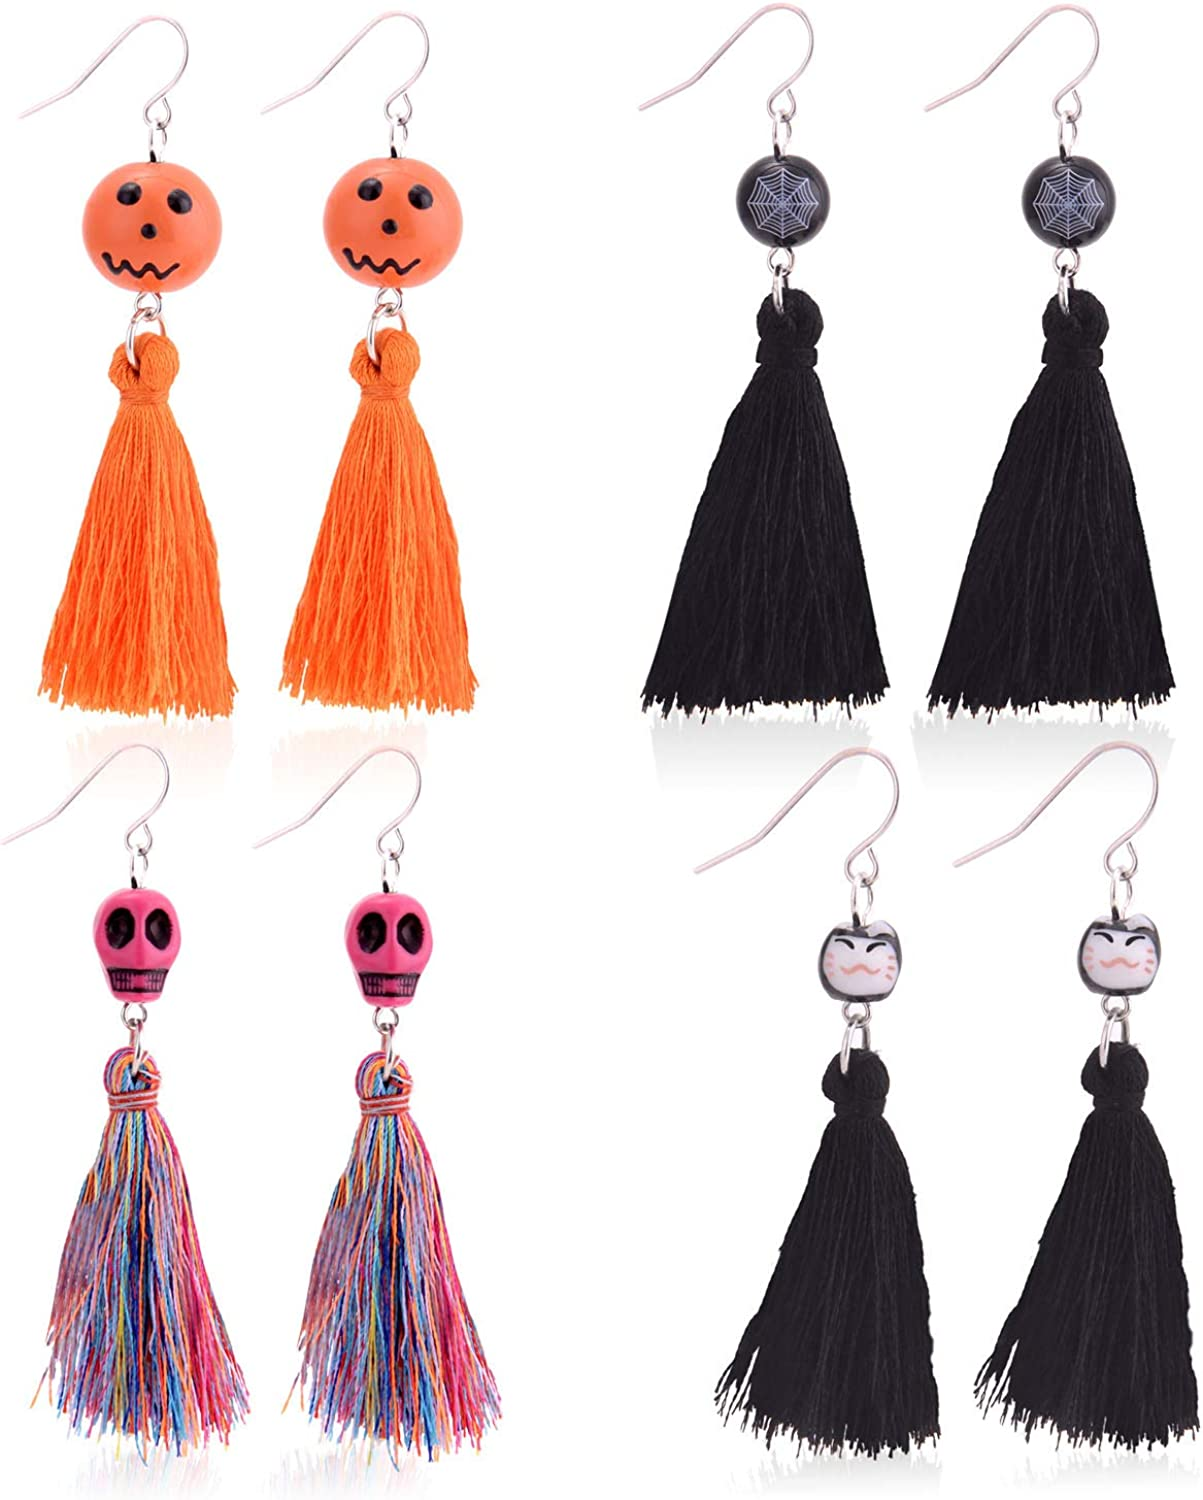 Long Stunning Statement Earrings Idea for Women Halloween Party Colorful Crystal Skeleton Earrings Drop Girls Skeleton Earrings Dangle Halloween